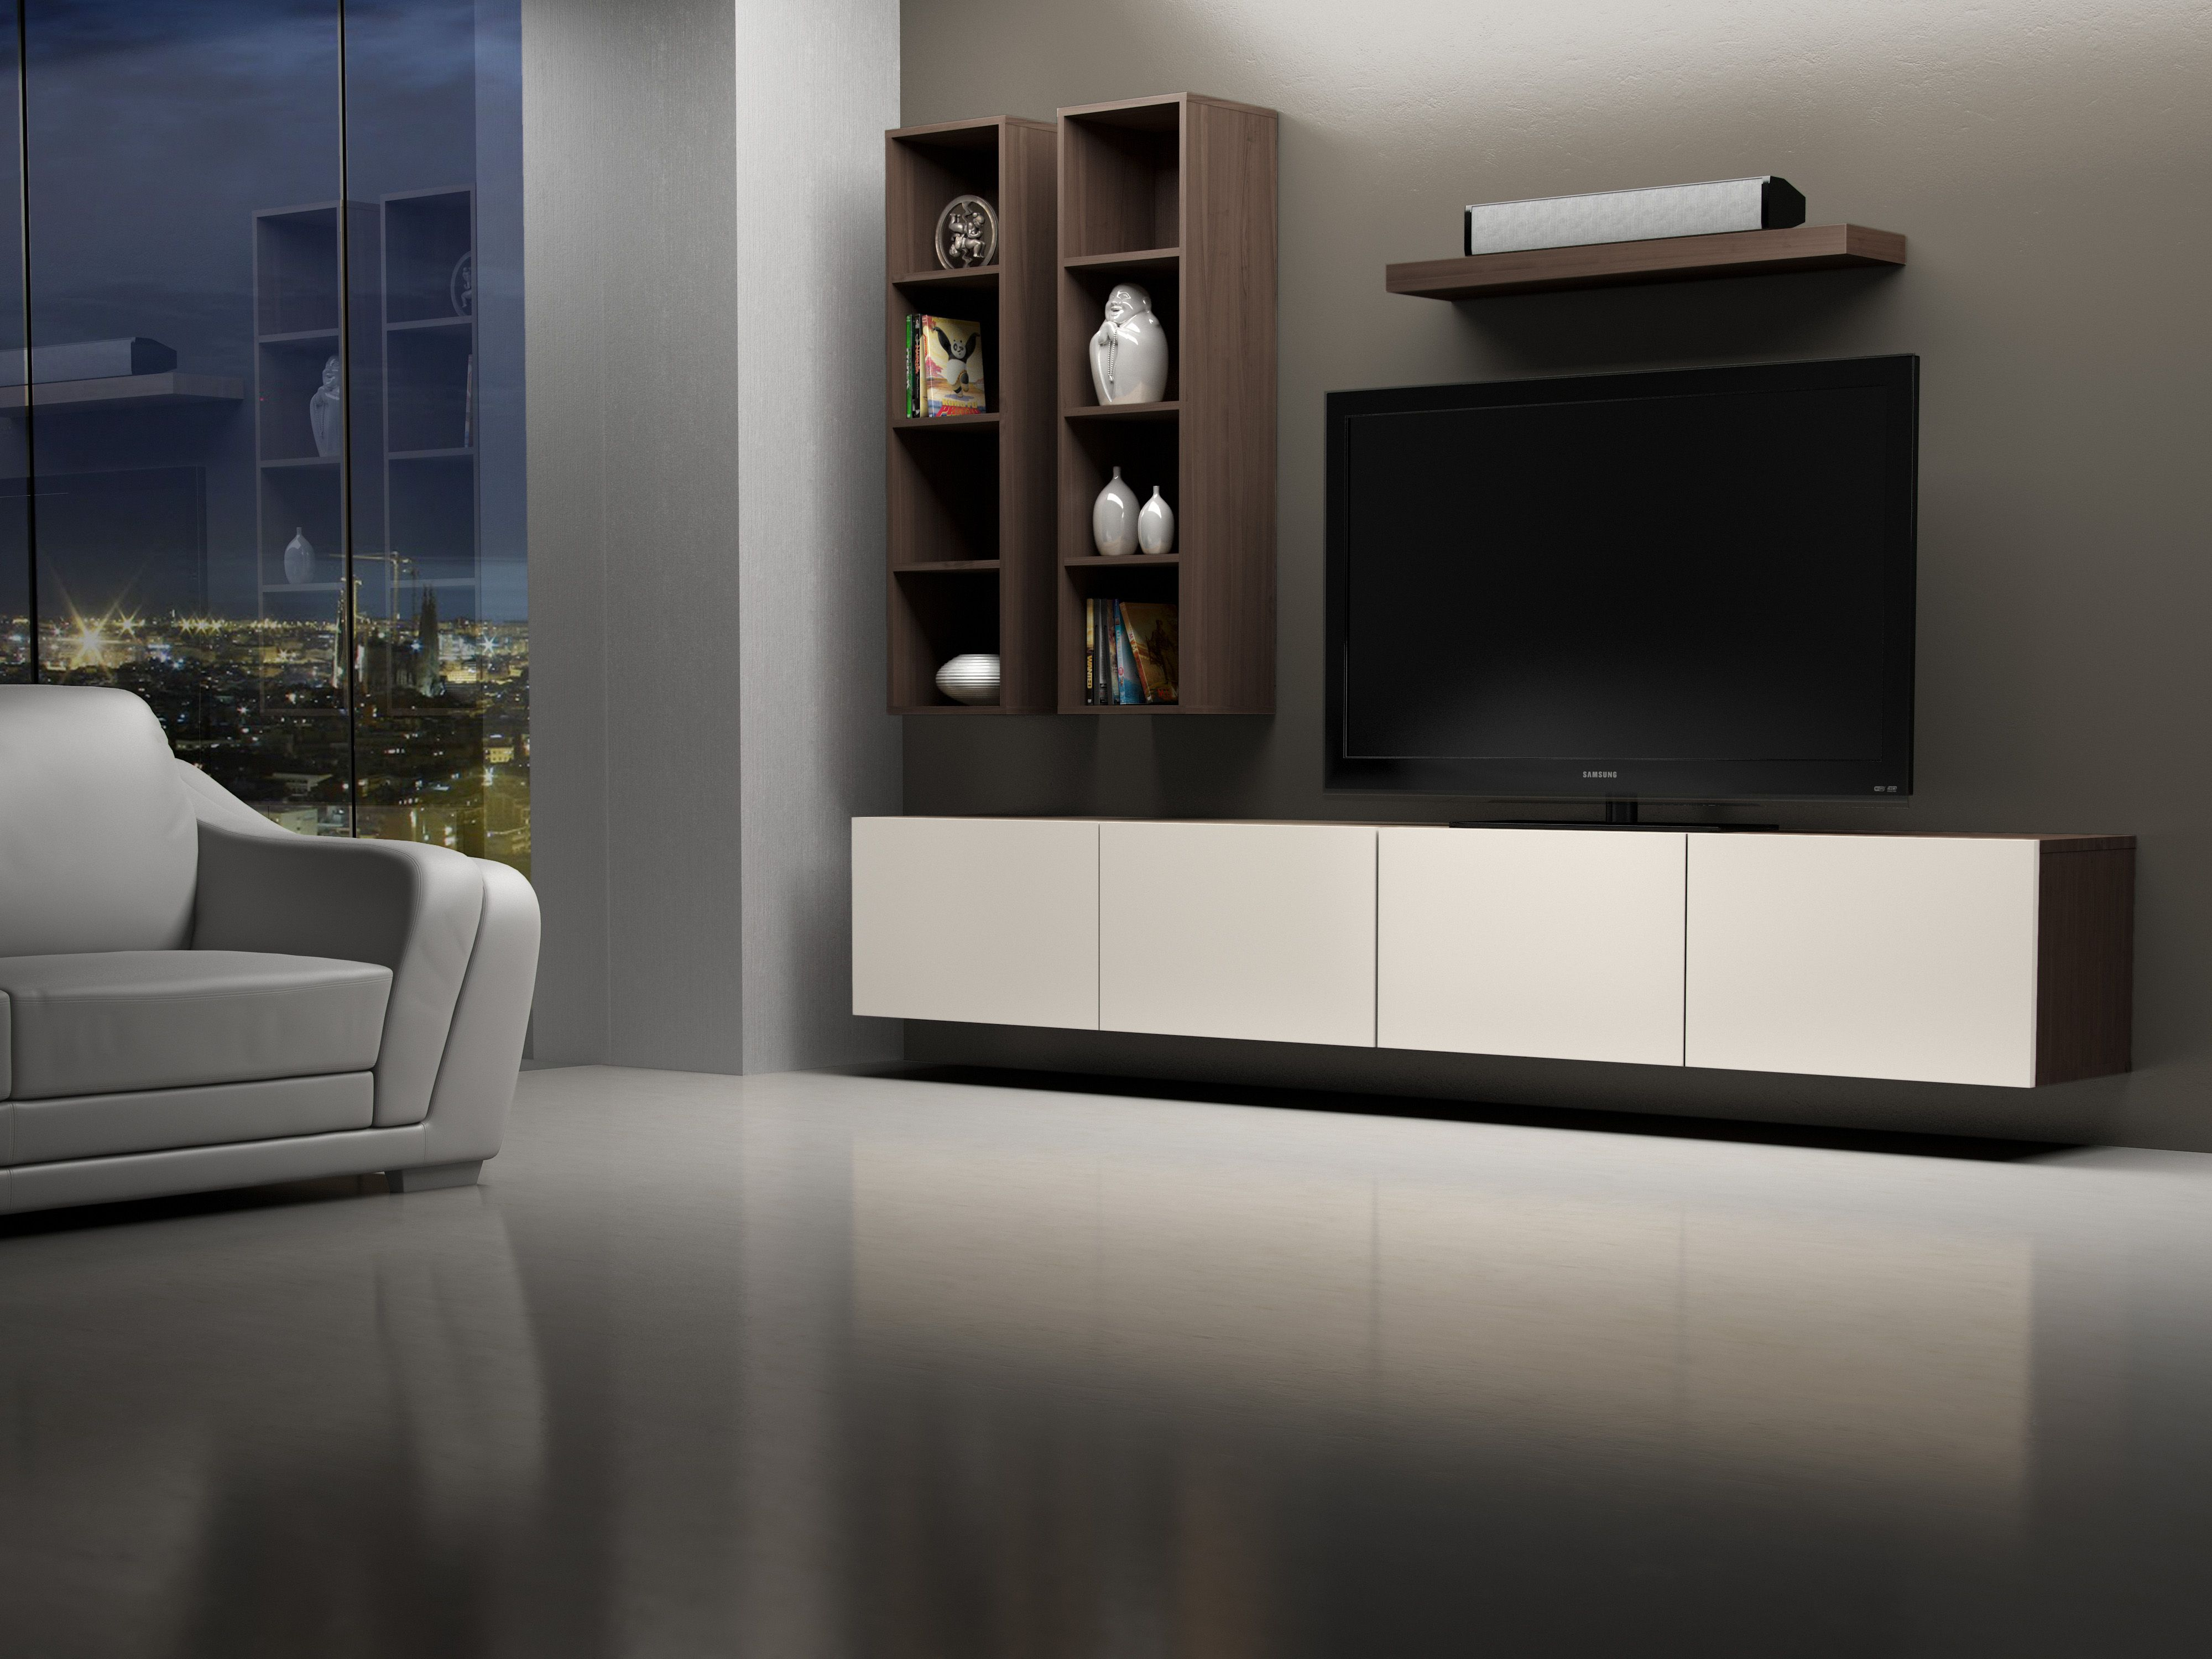 syne createch design homecinema homeentertainment hometheater tvstand tv television design style modern contemporary